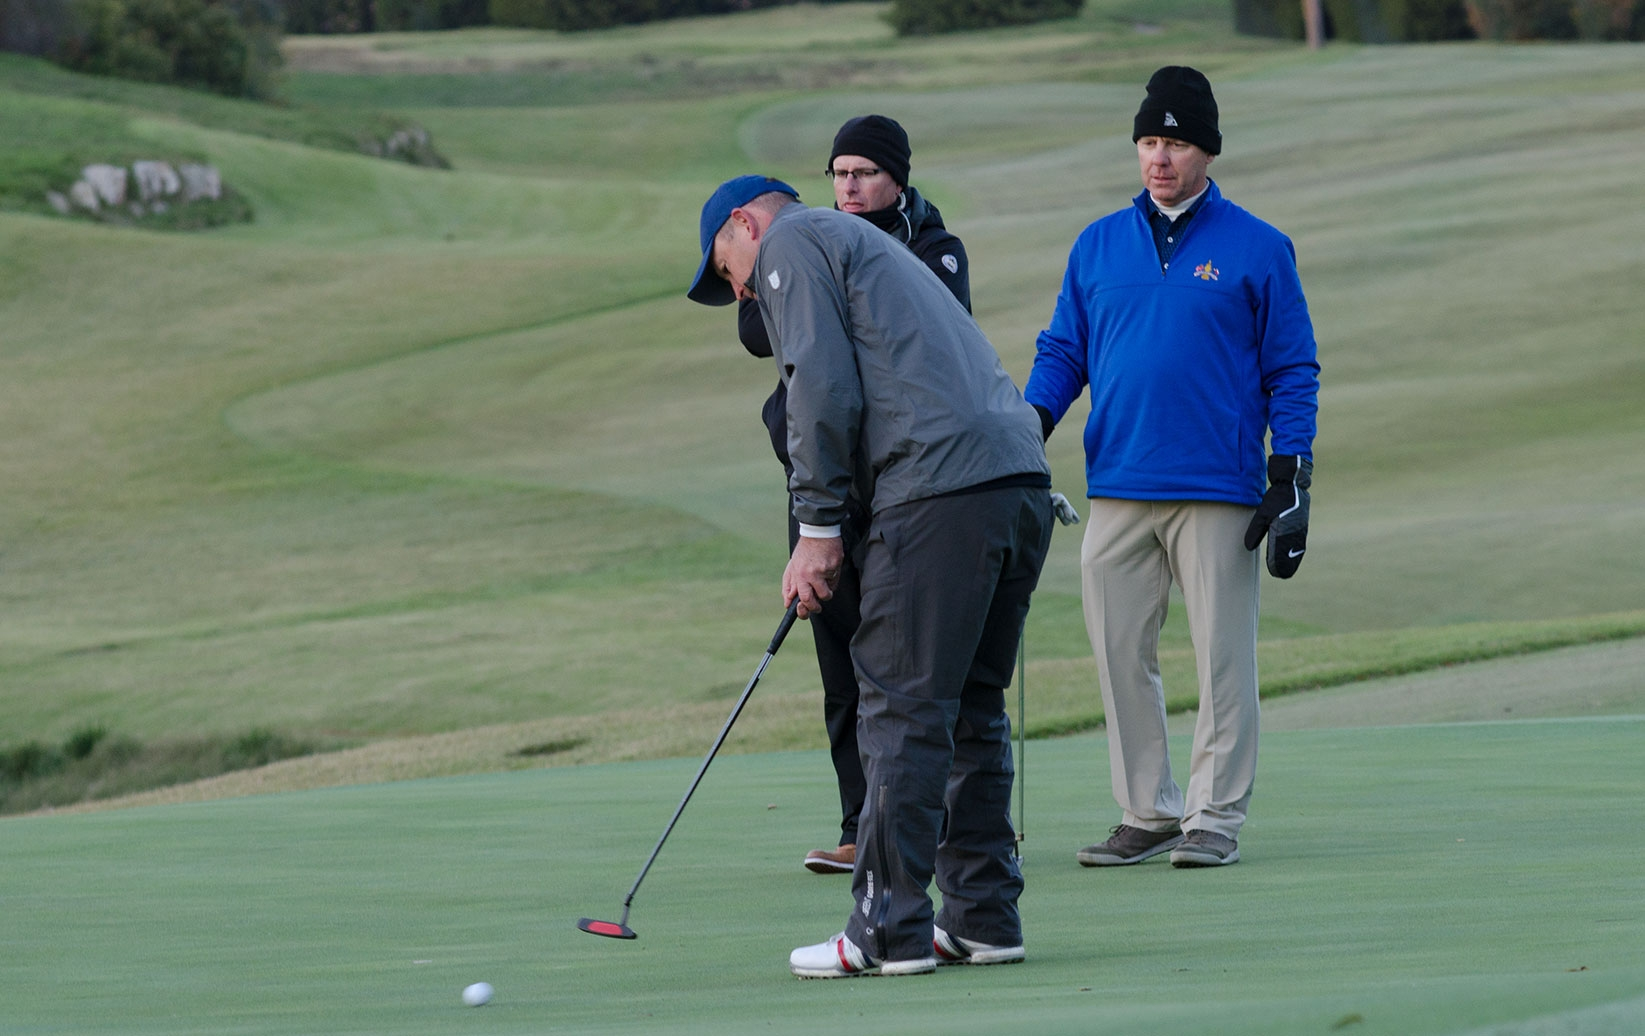 Southern Texas PGA Team Leads After Day One of the Texas Joe Black Cup Matches